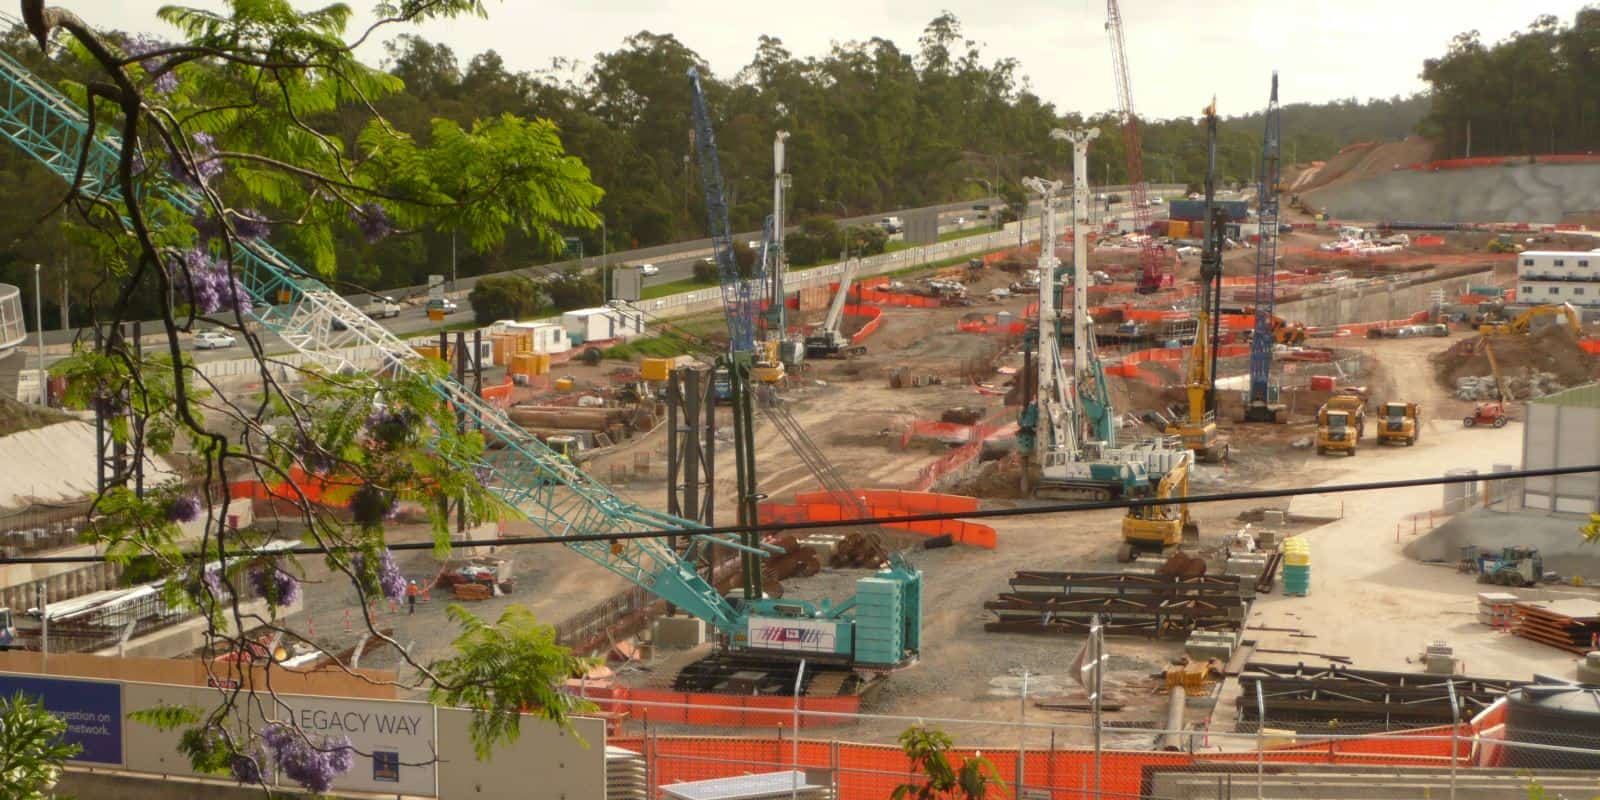 Construction at the western tunnel entrance of the Legacy Way Project, Brisbane